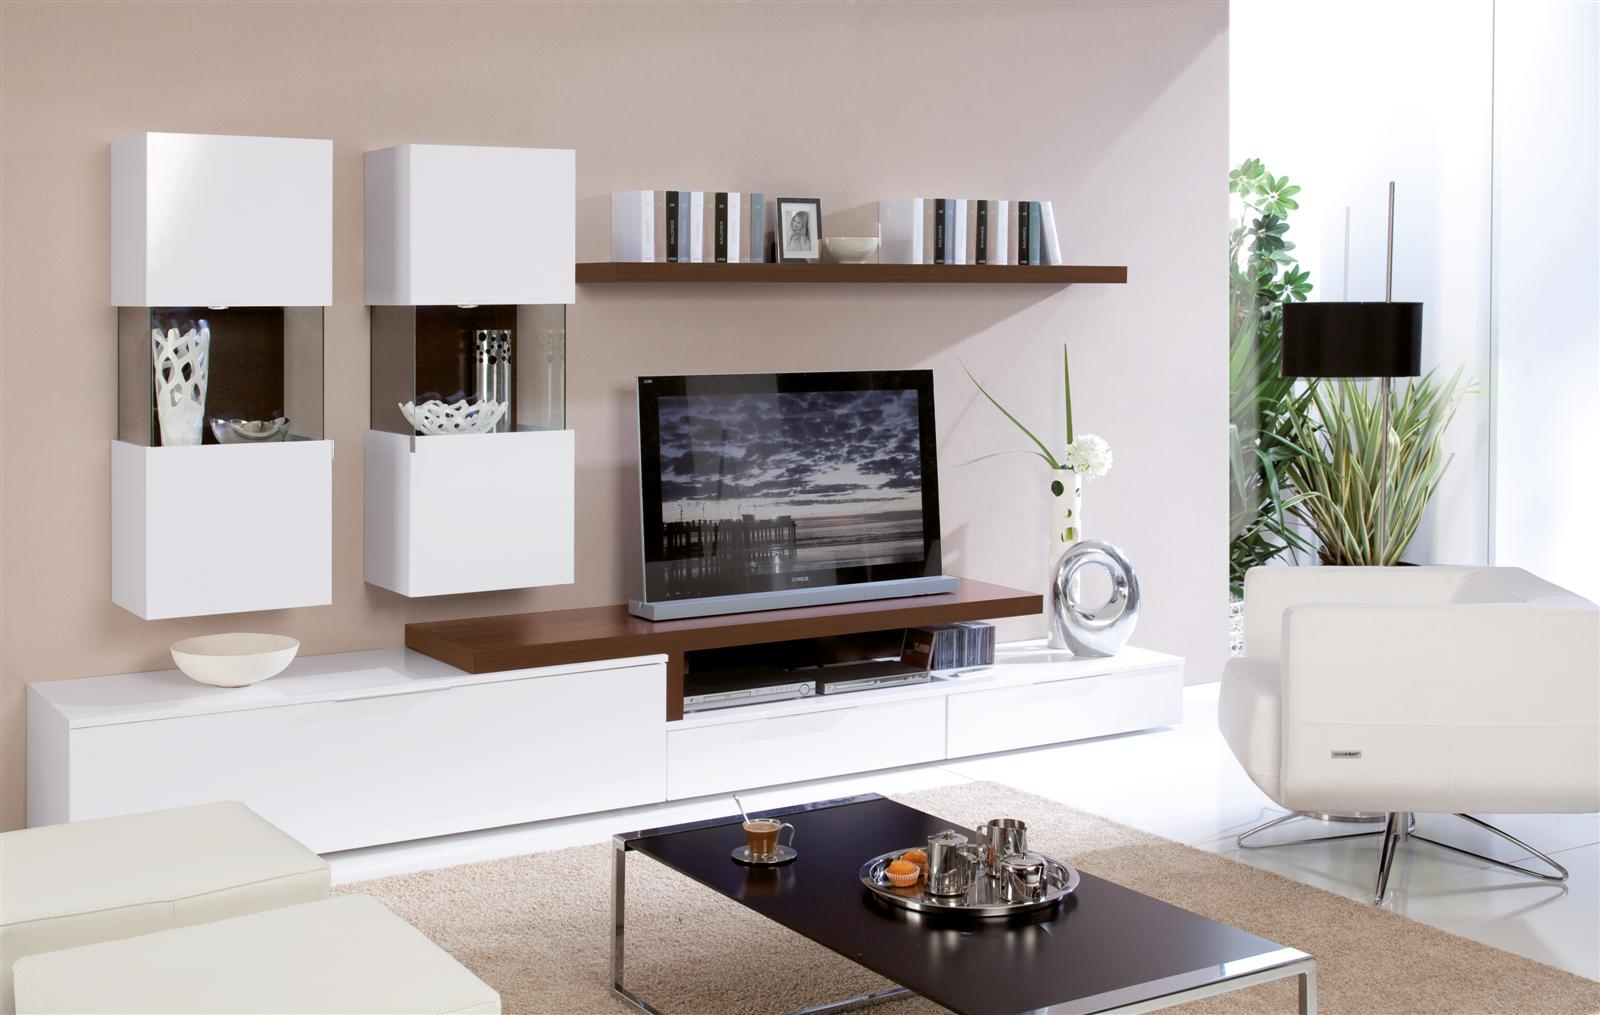 20 modern tv unit design ideas for bedroom living room Modern tv unit design ideas